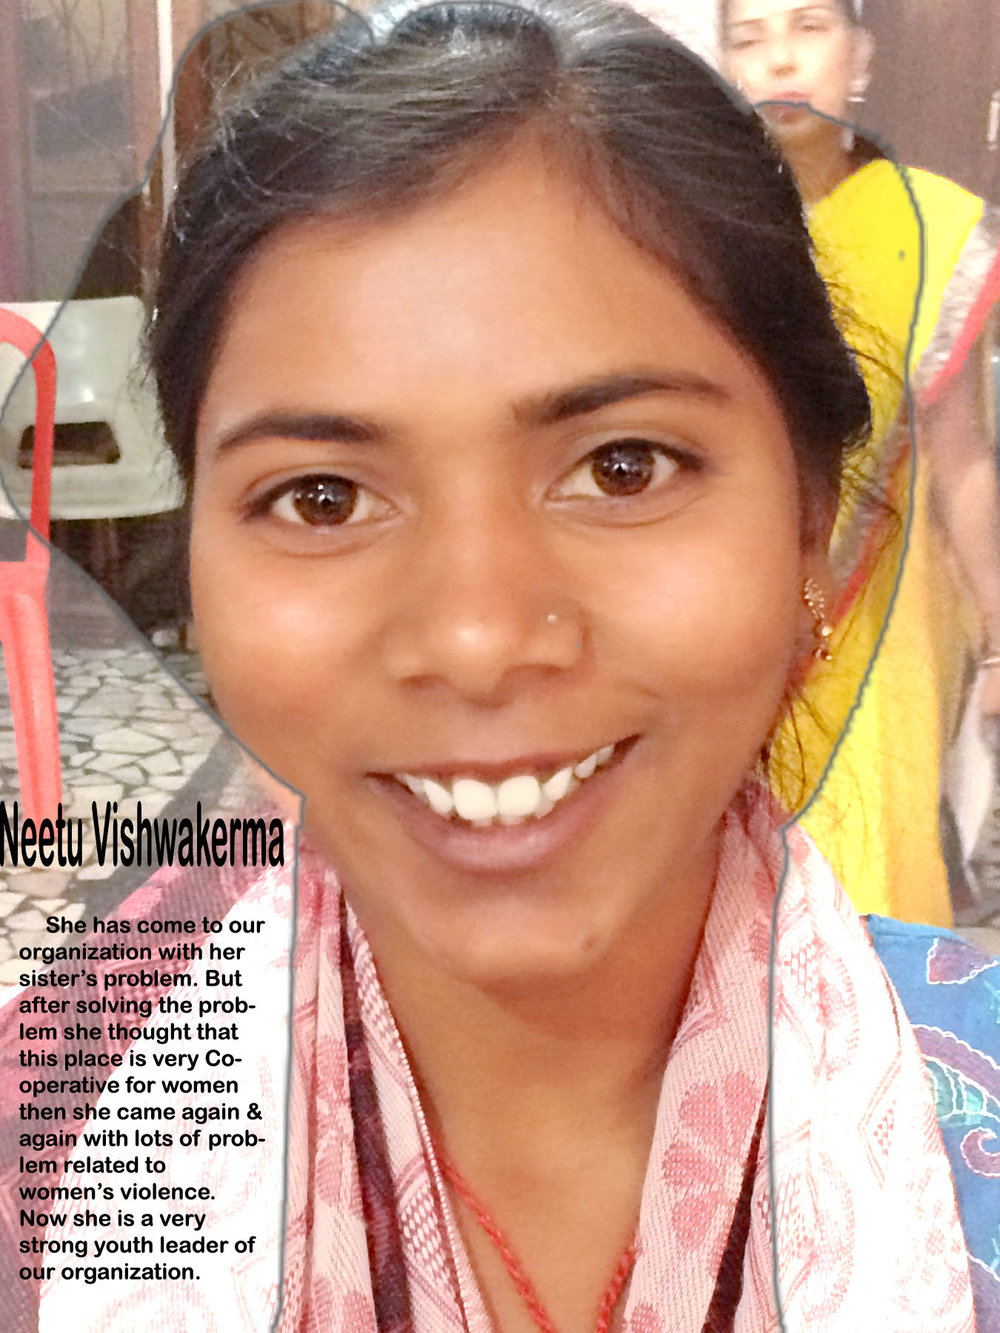 Nitu  Vishwakarma women human right defender--.jpg